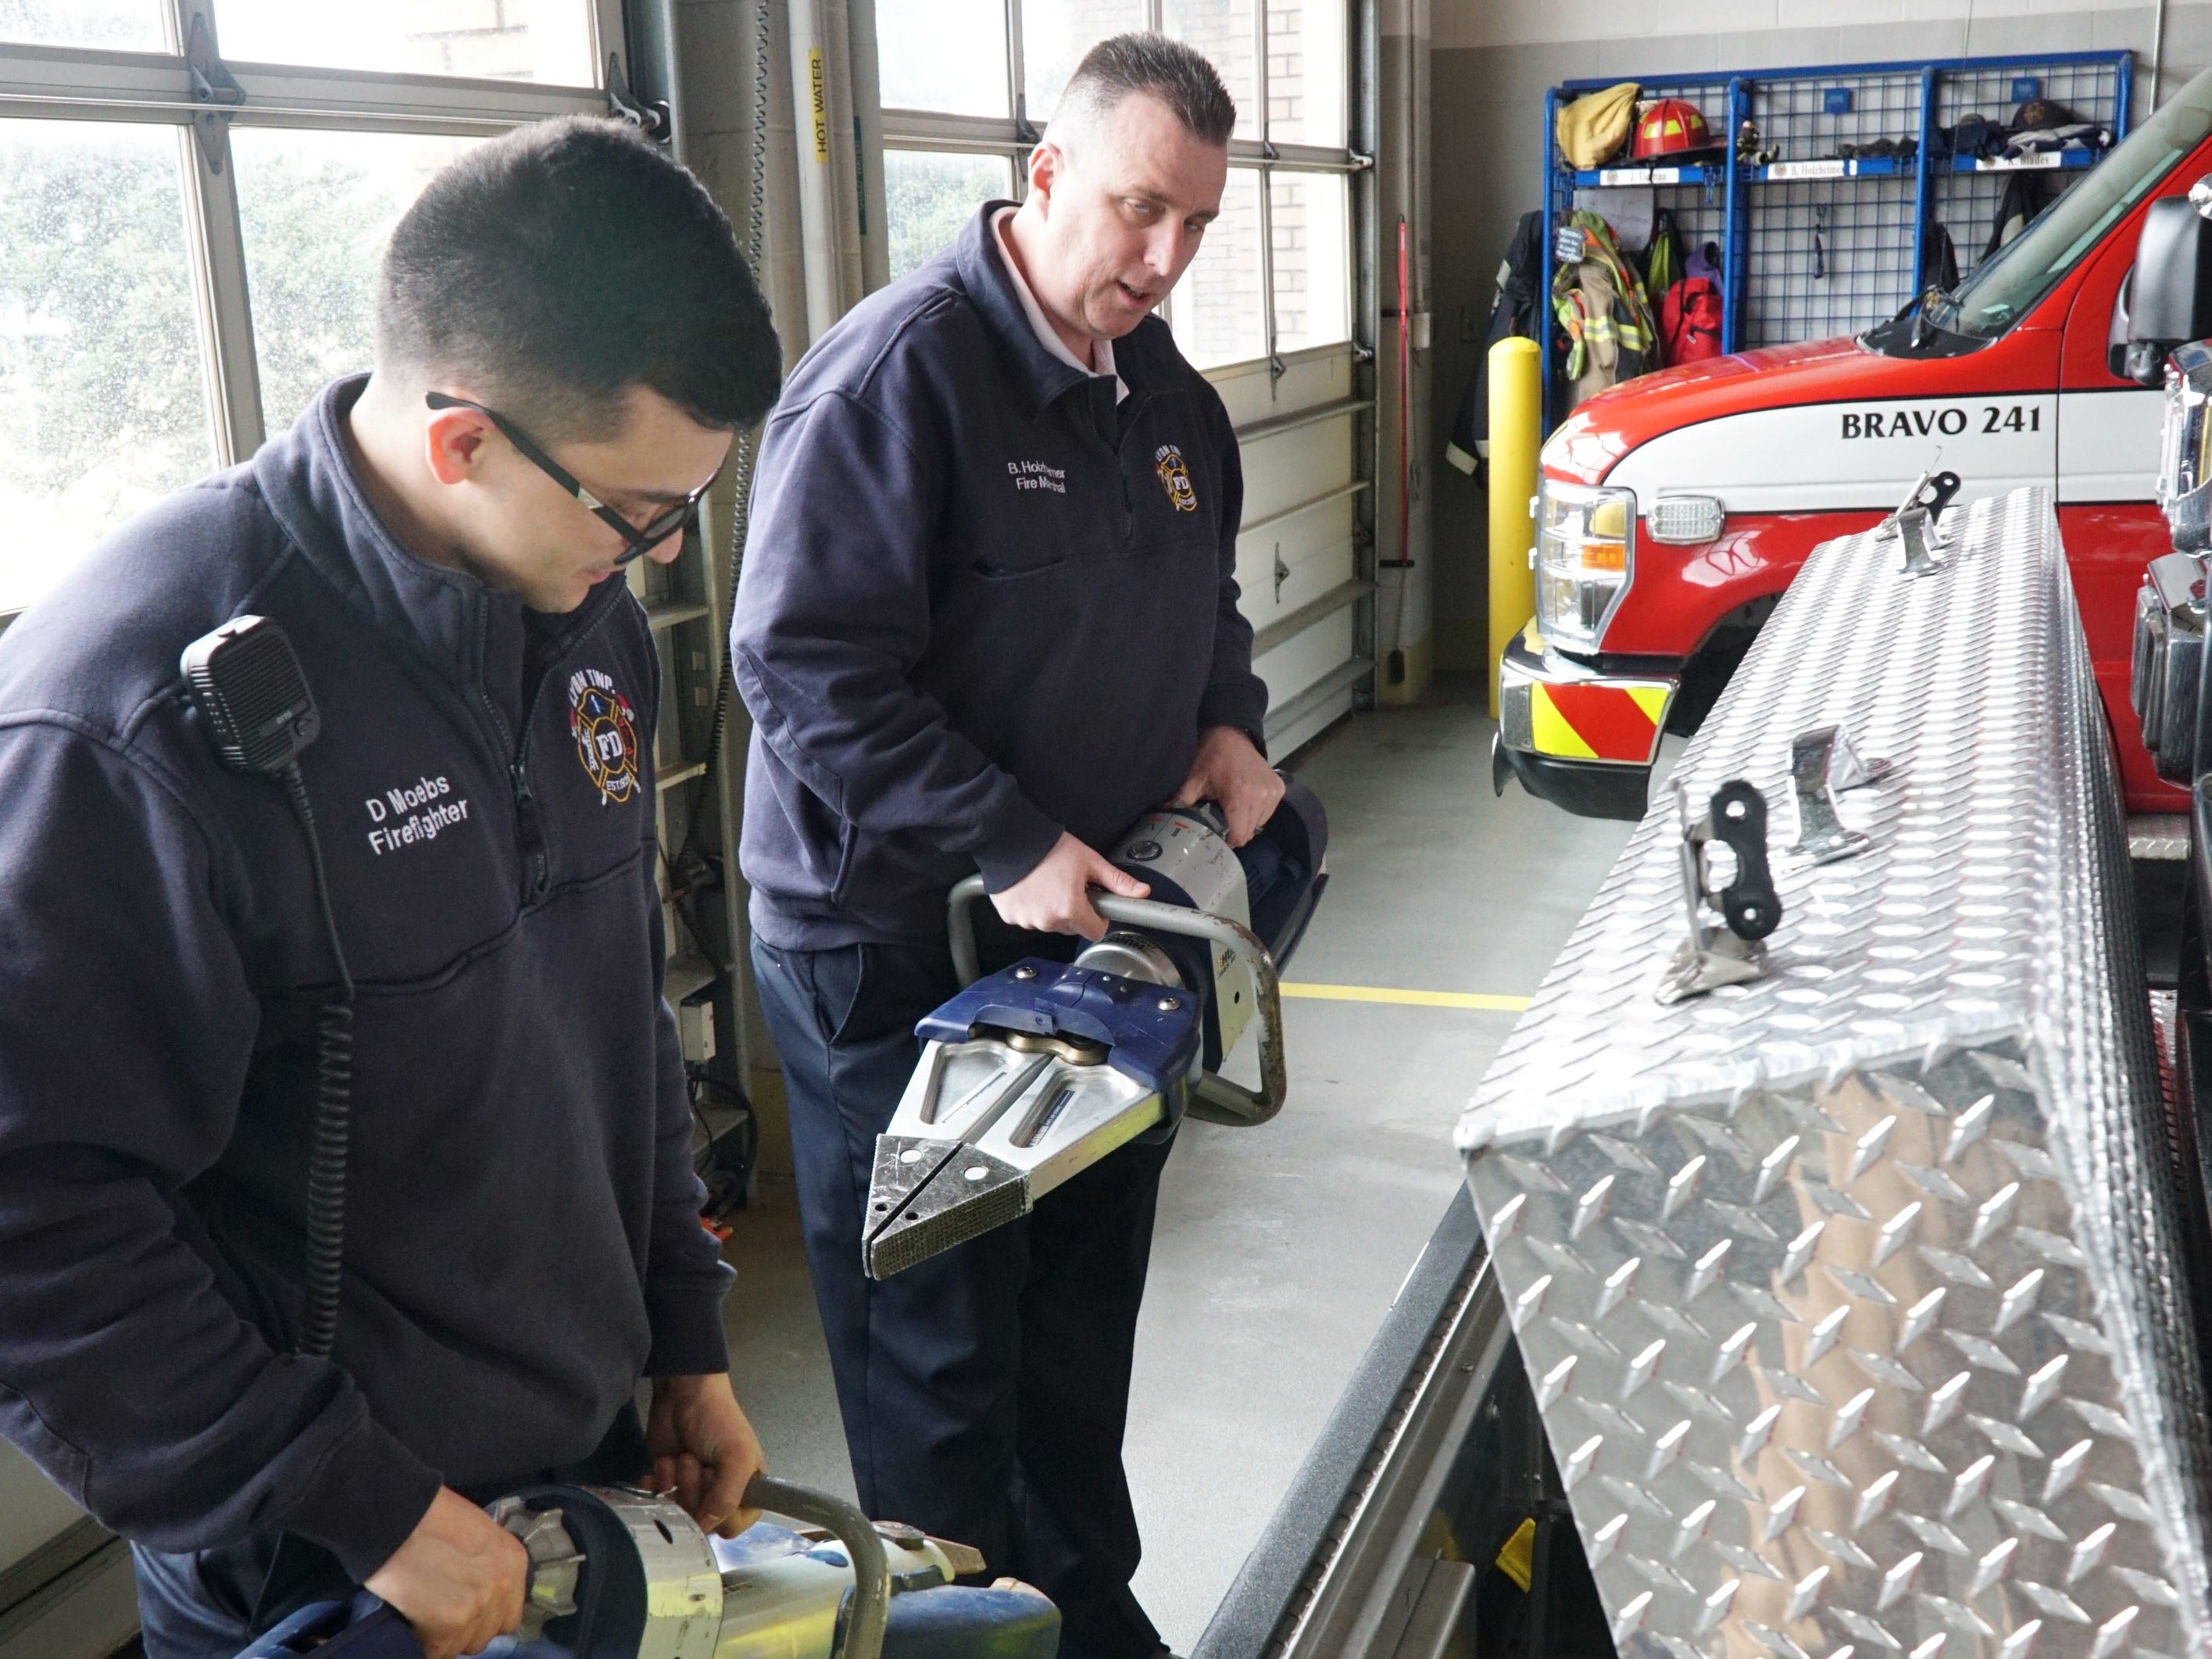 Lyon Township firefighters Doug Moebs, left, and Brian Holzheimer check out their new ladder truck's jaws of life units - which are now battery powered instead of by hydraulics.